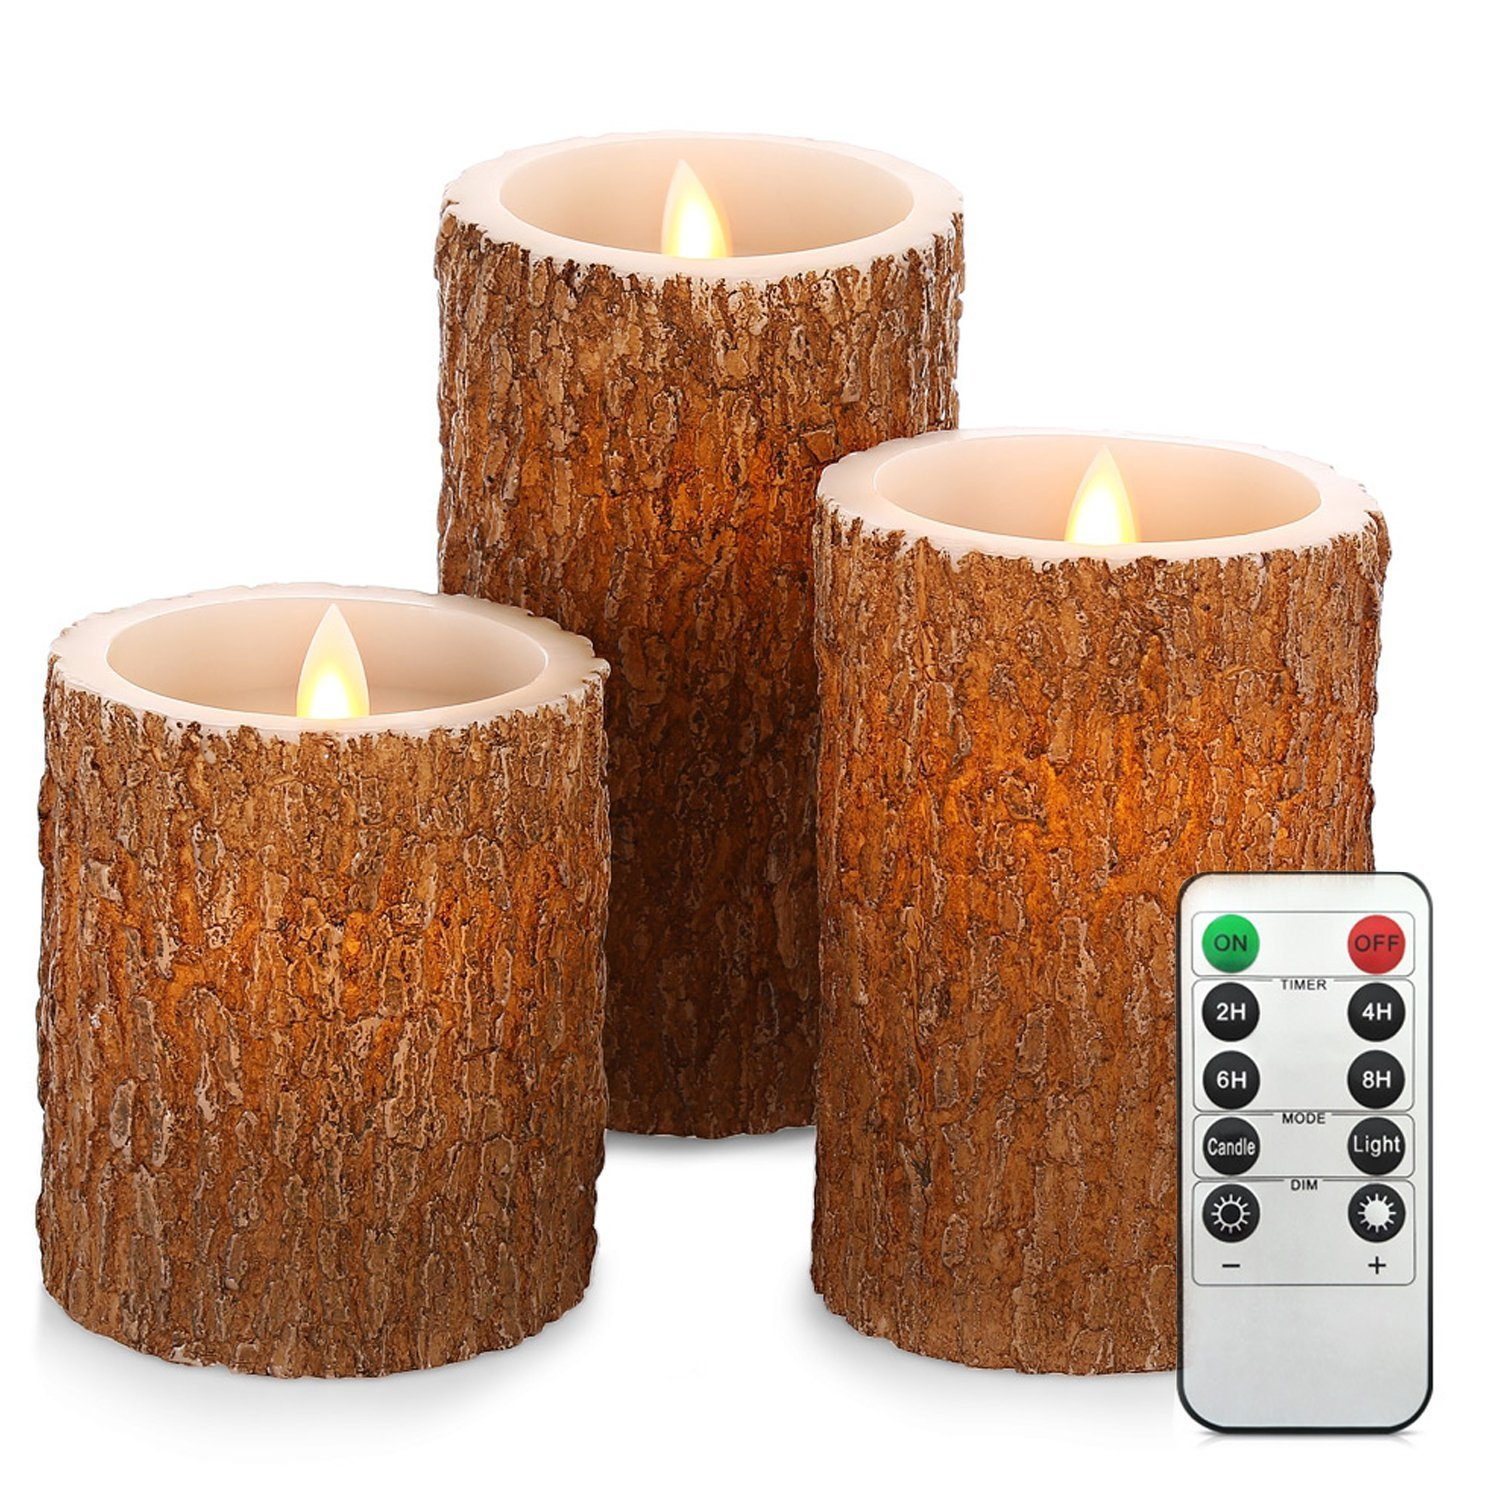 weGarden 213183701-US Flameless Candles, Real Wax Battery Operated Led Flickering Bark Simulation Pillar and Cycling 24 hours Timer, Set of 3